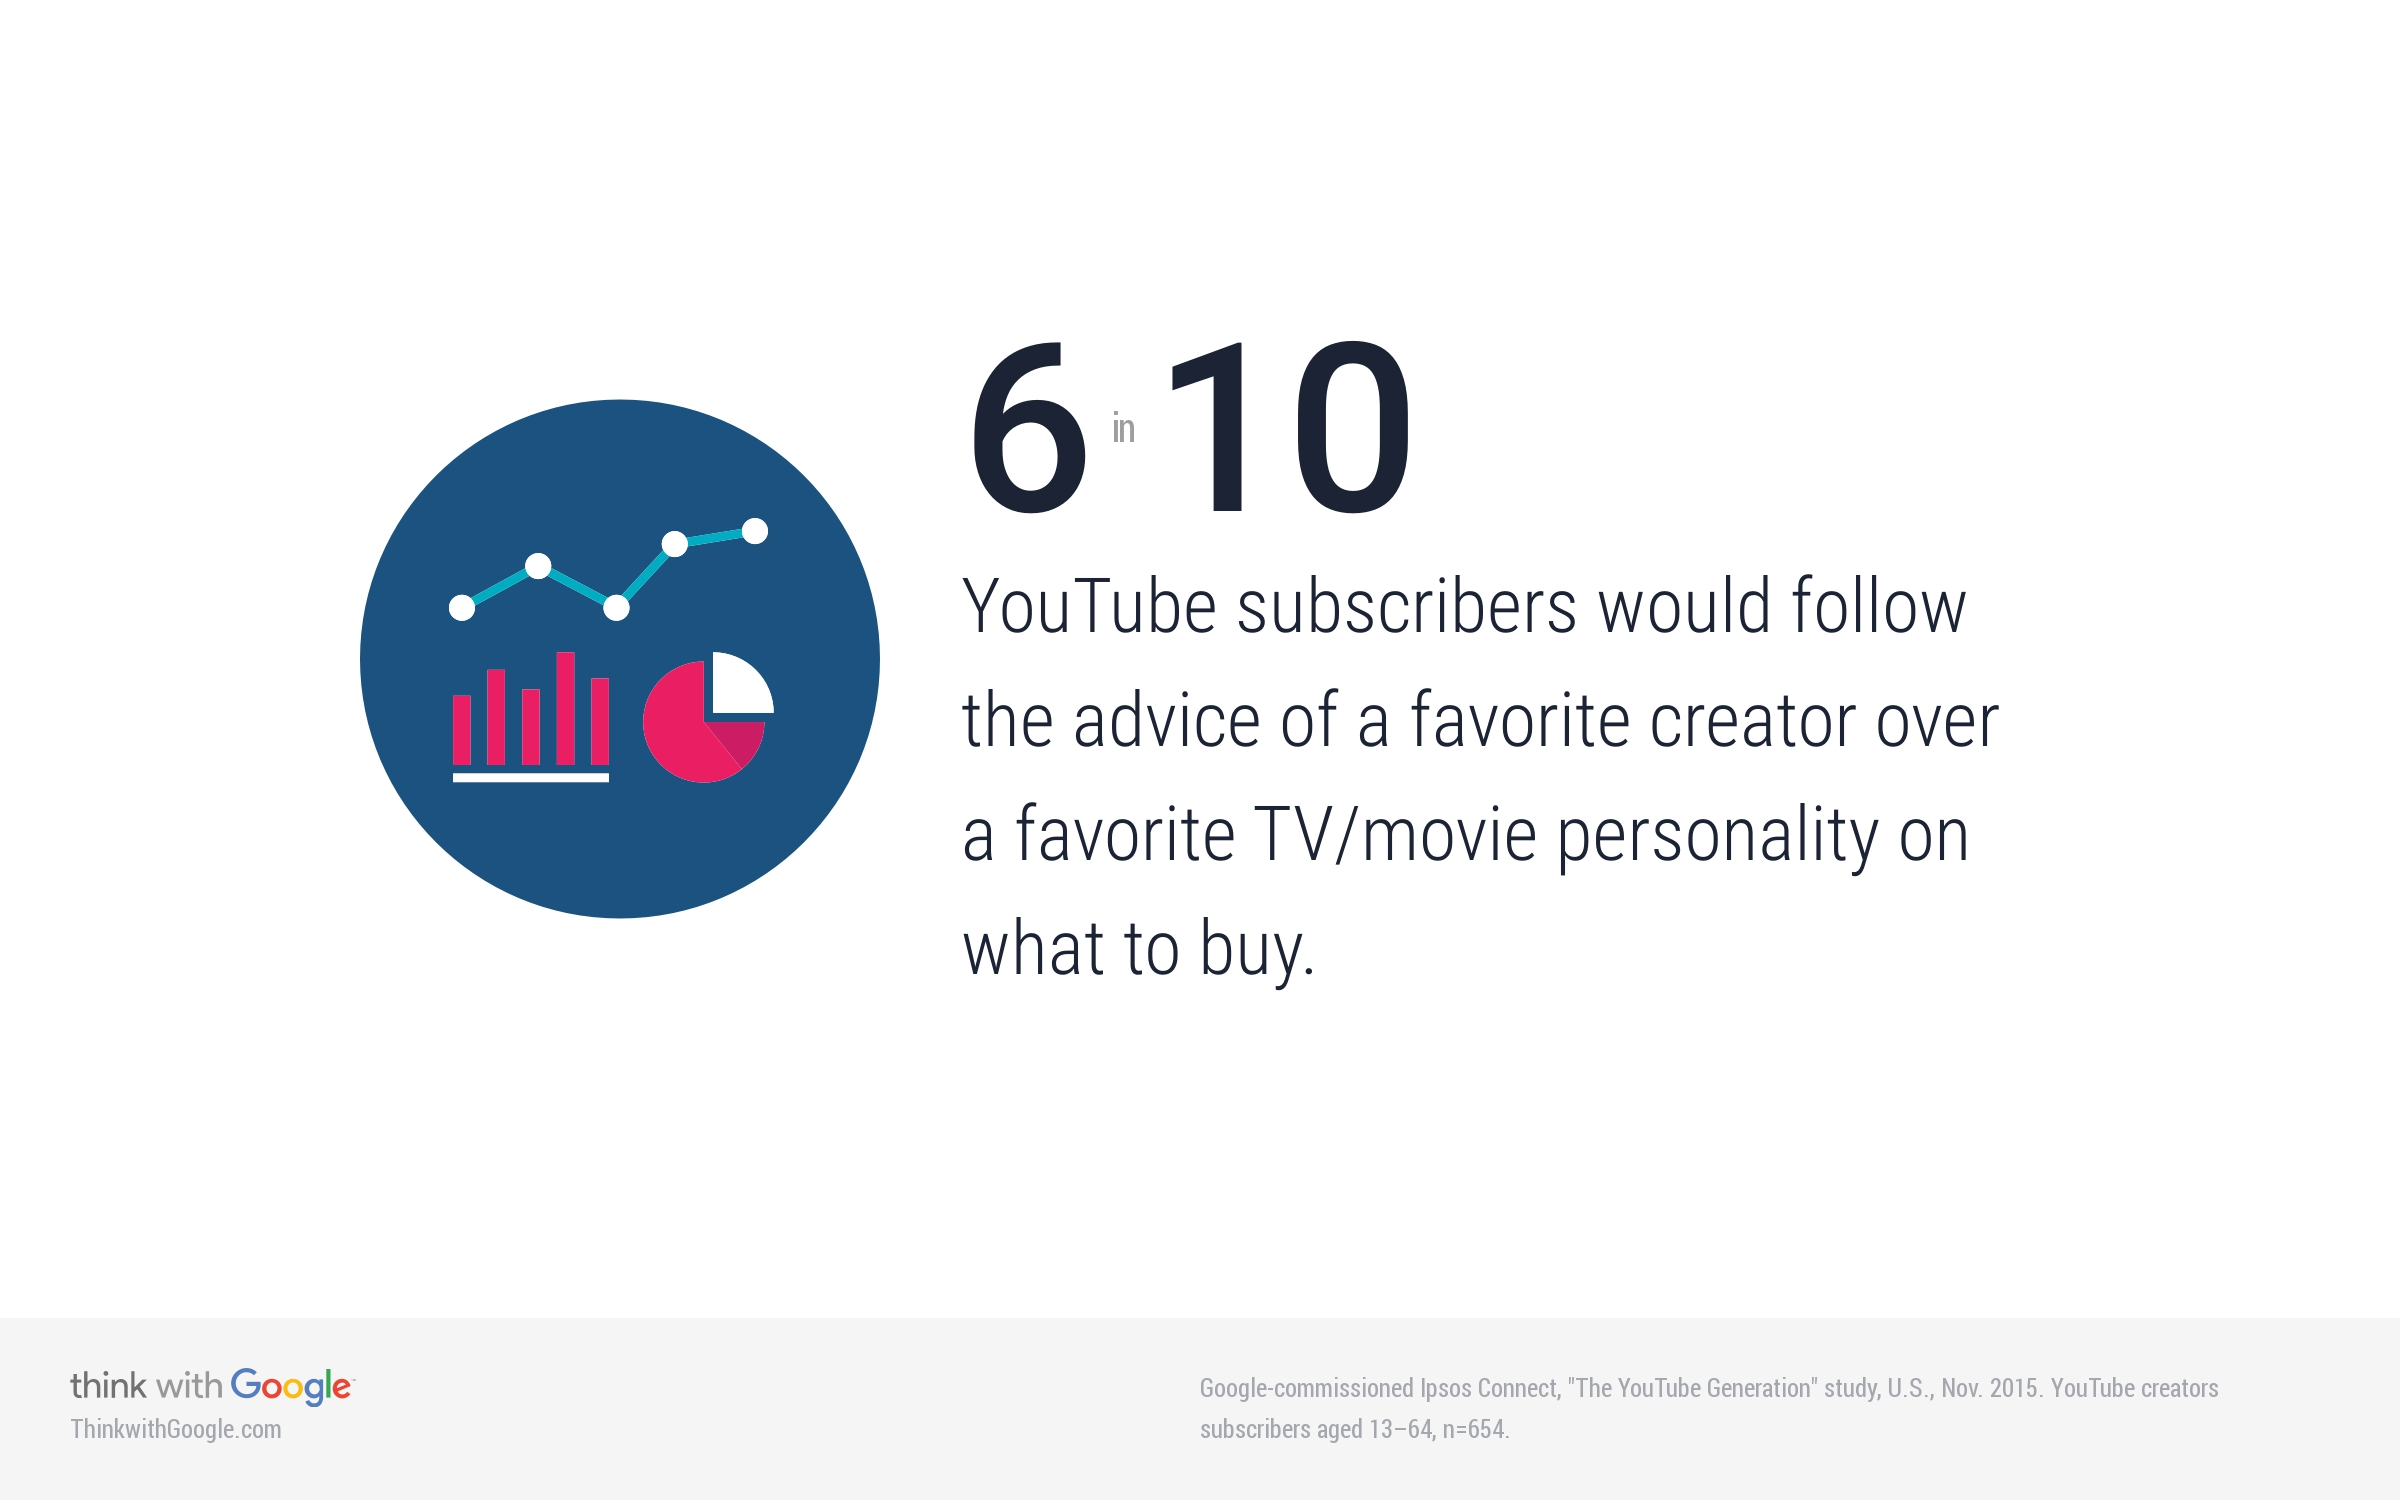 youtube-creators-and-purchase-influence